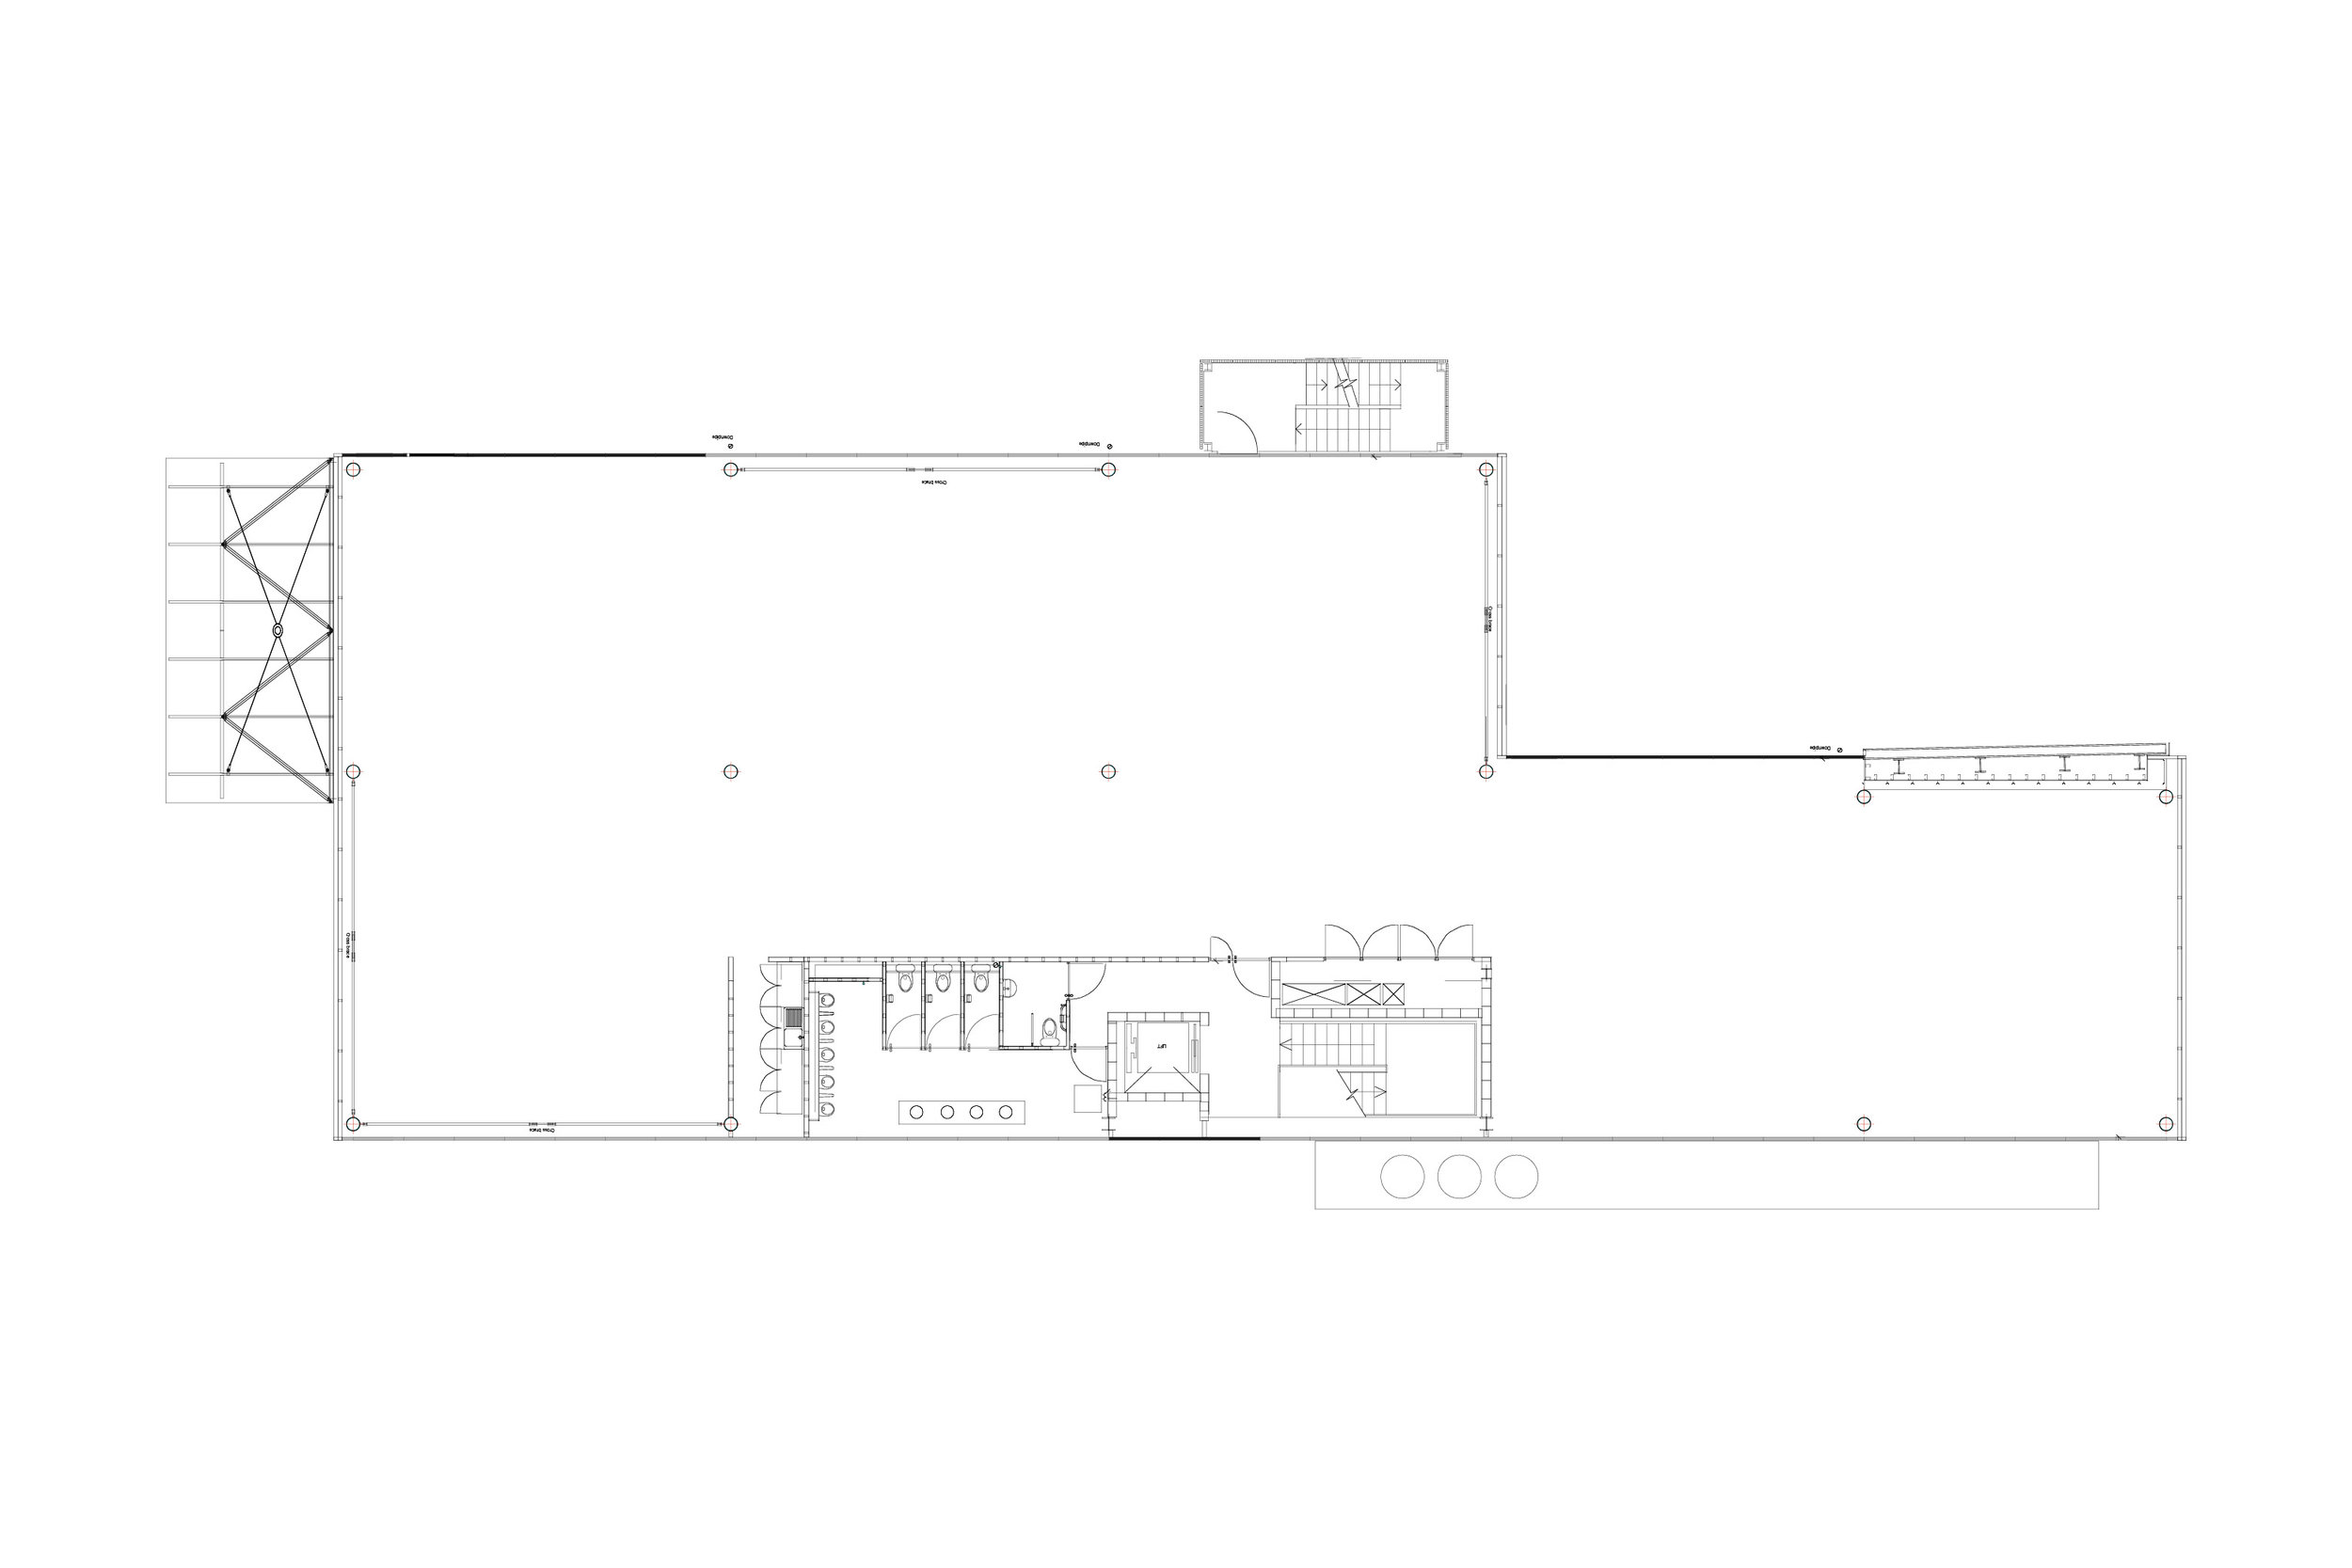 Floor Plan for Demountable Offices by Mowat and Company